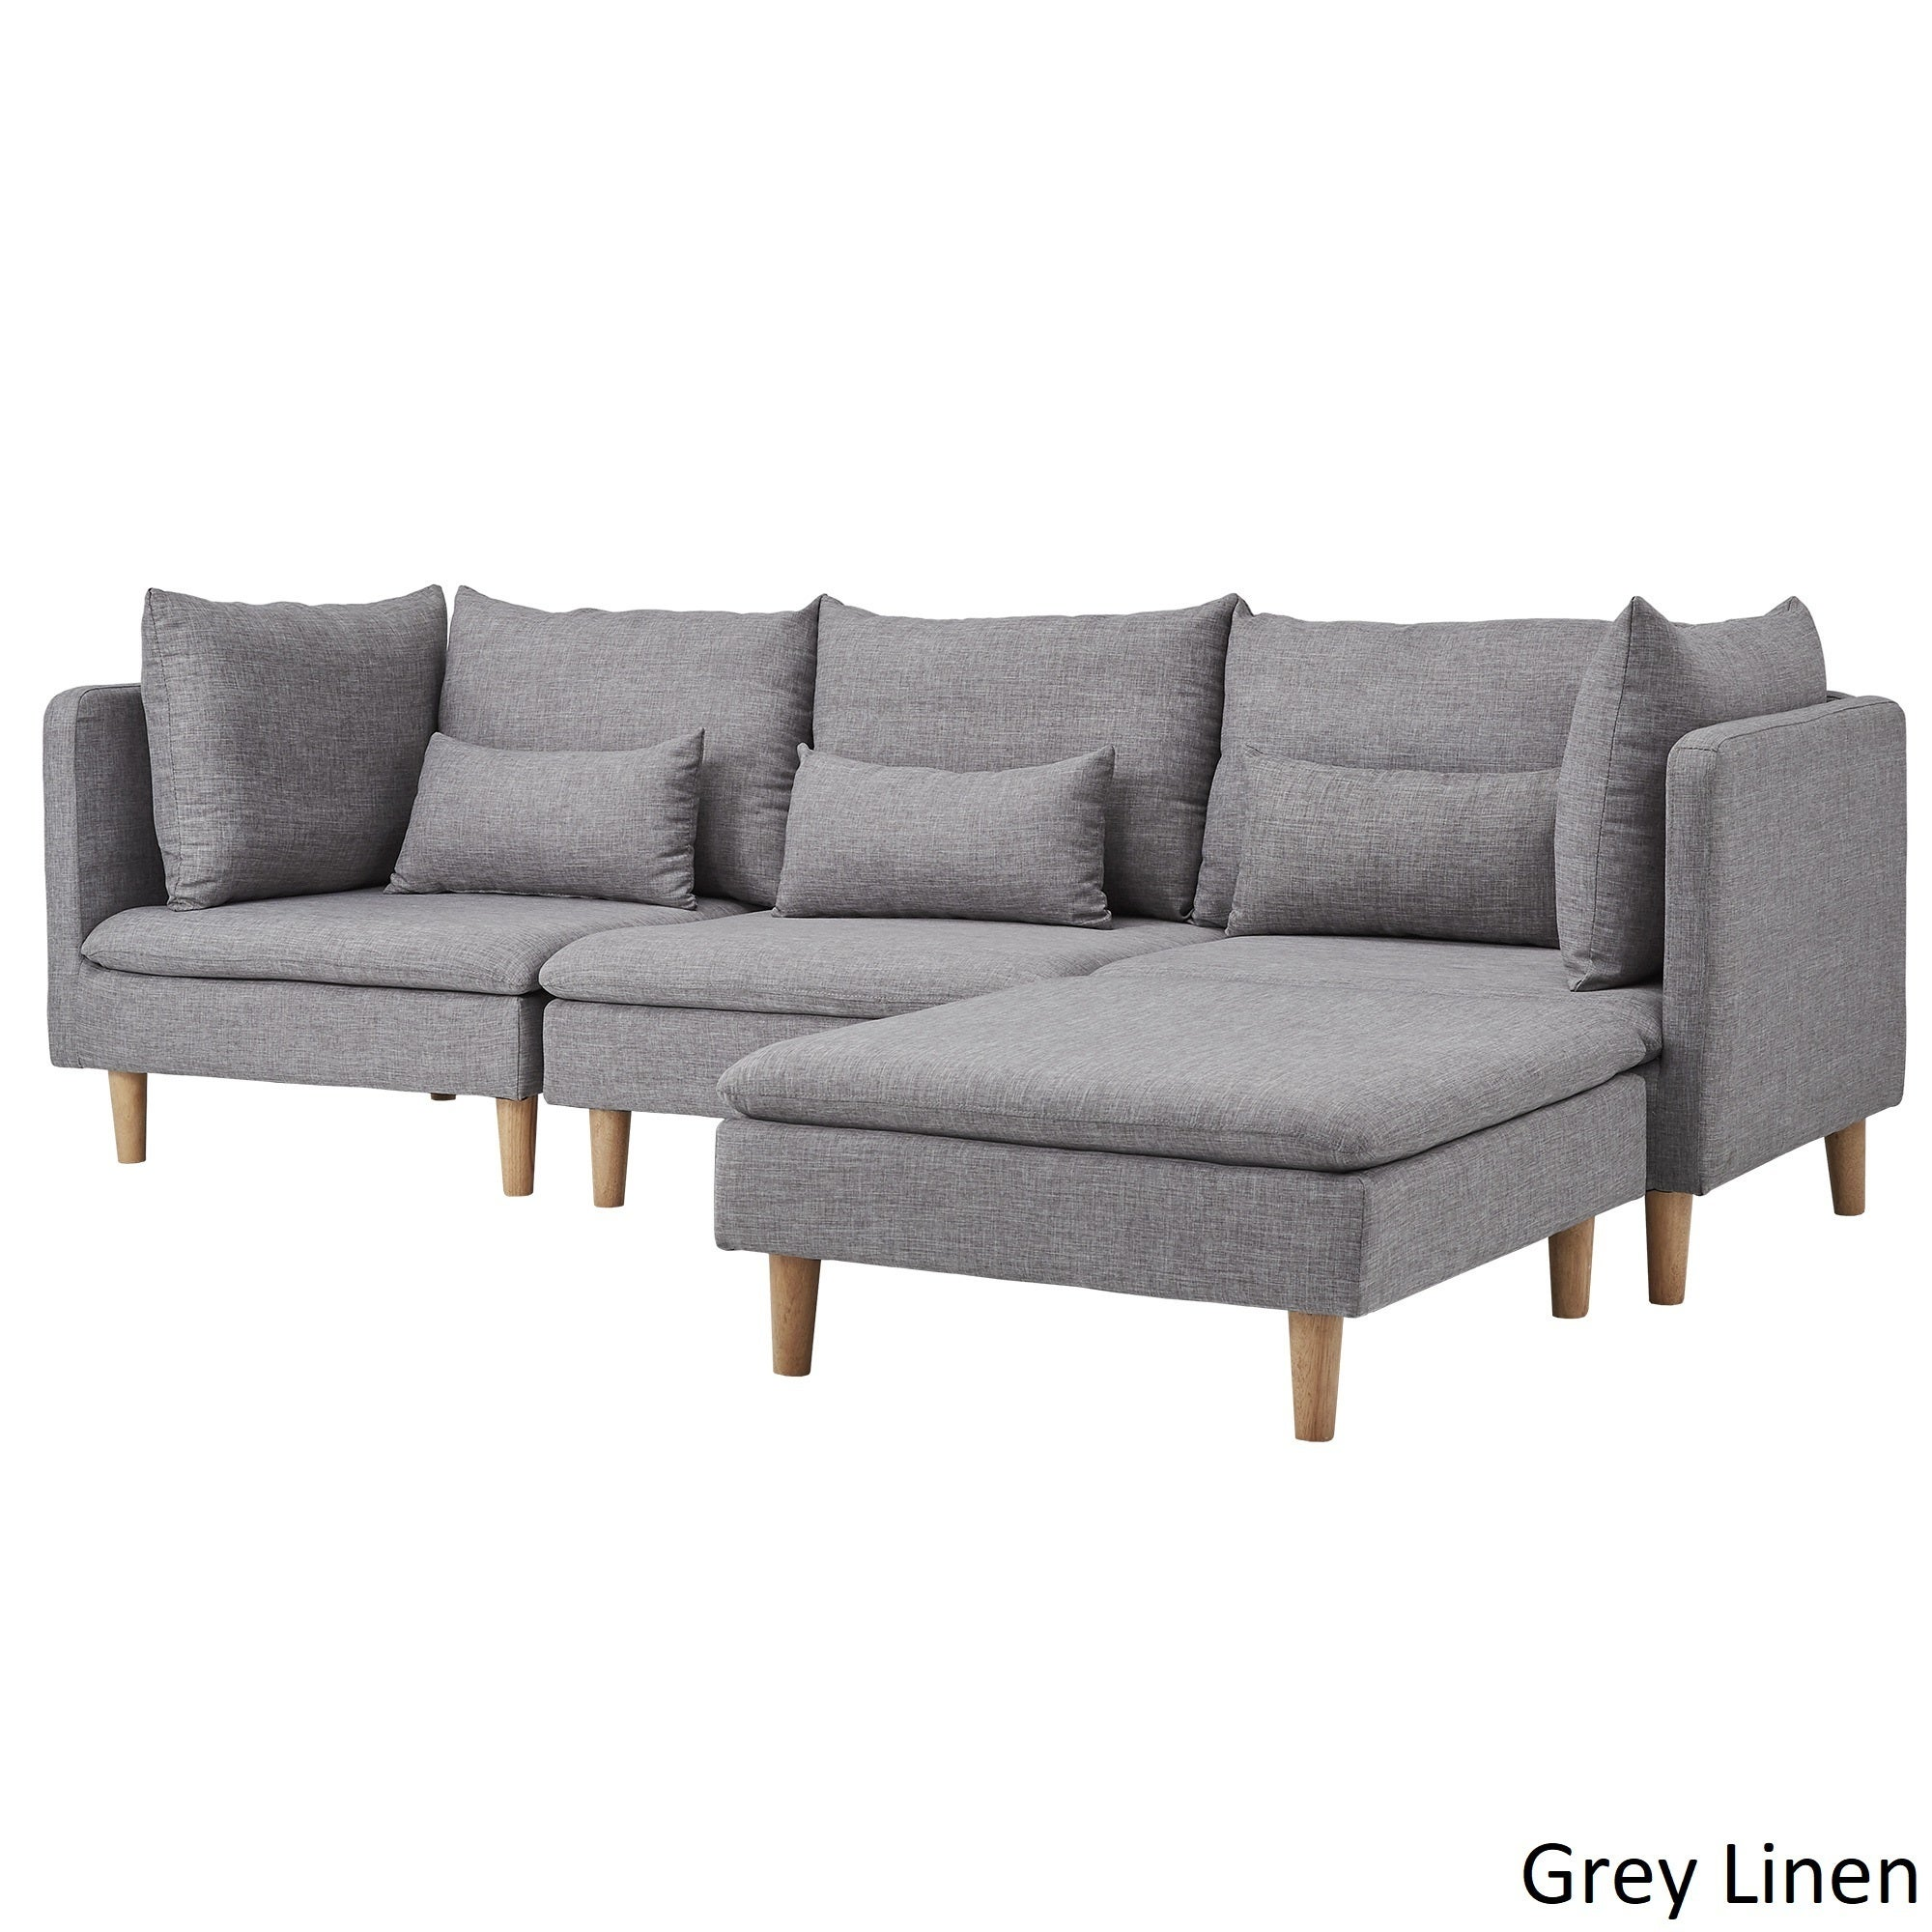 Malina Modular Fabric L-Shaped Chaise Sectional Sofa by iNSPIRE Q Modern -  Free Shipping Today - Overstock.com - 22836657